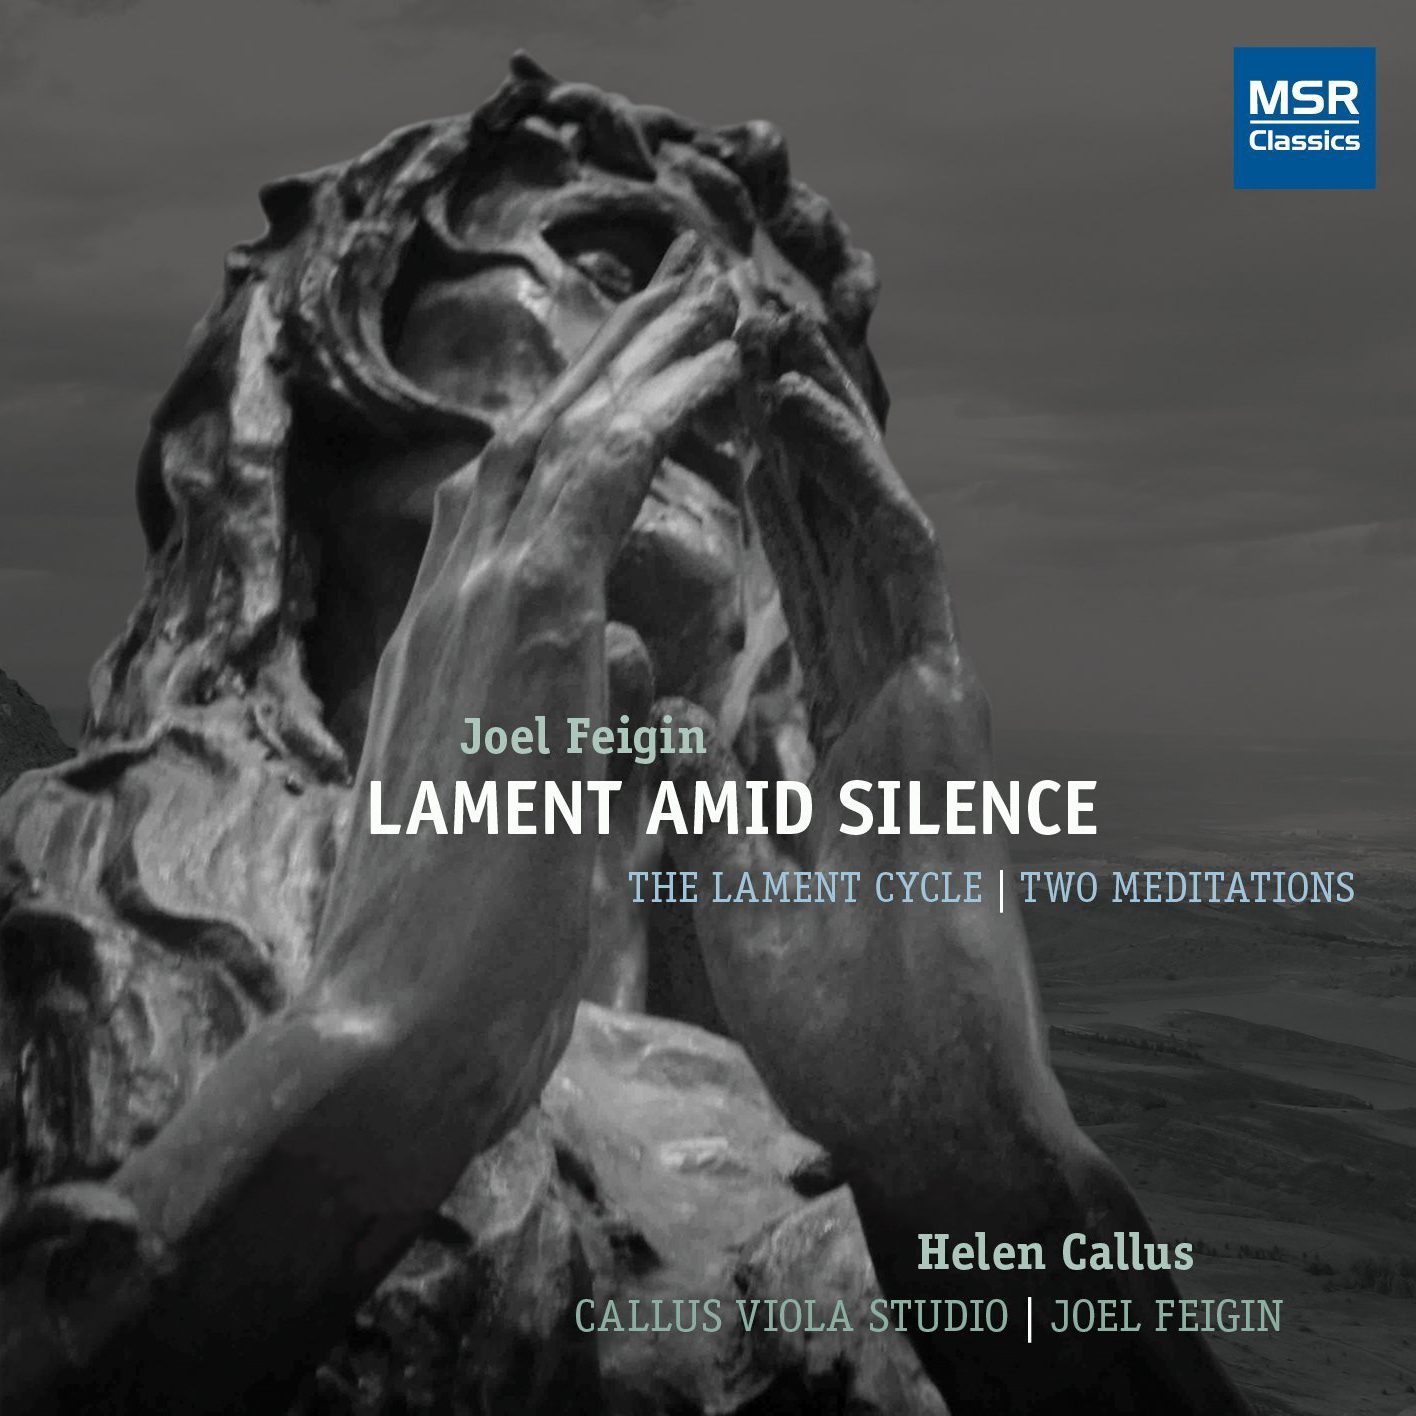 Joel Feigin: Lament Amid Silence